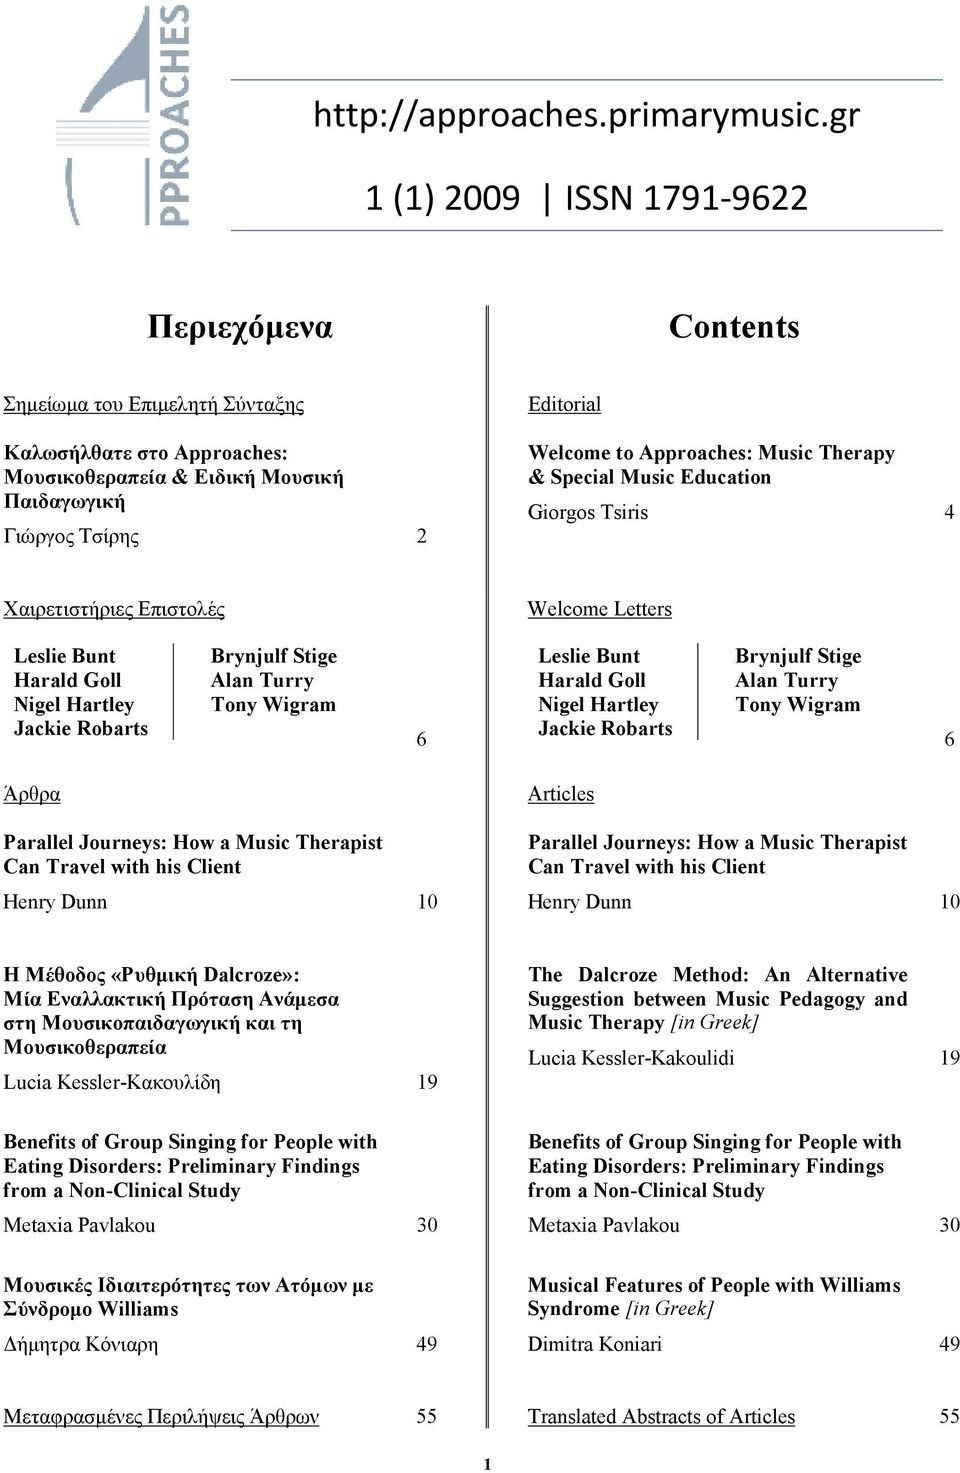 Approaches: Music Therapy & Special Music Education Giorgos Tsiris 4 Χαιρετιστήριες Επιστολές Welcome Letters Leslie Bunt Harald Goll igel Hartley Jackie Robarts Brynjulf Stige Alan Turry Tony Wigram